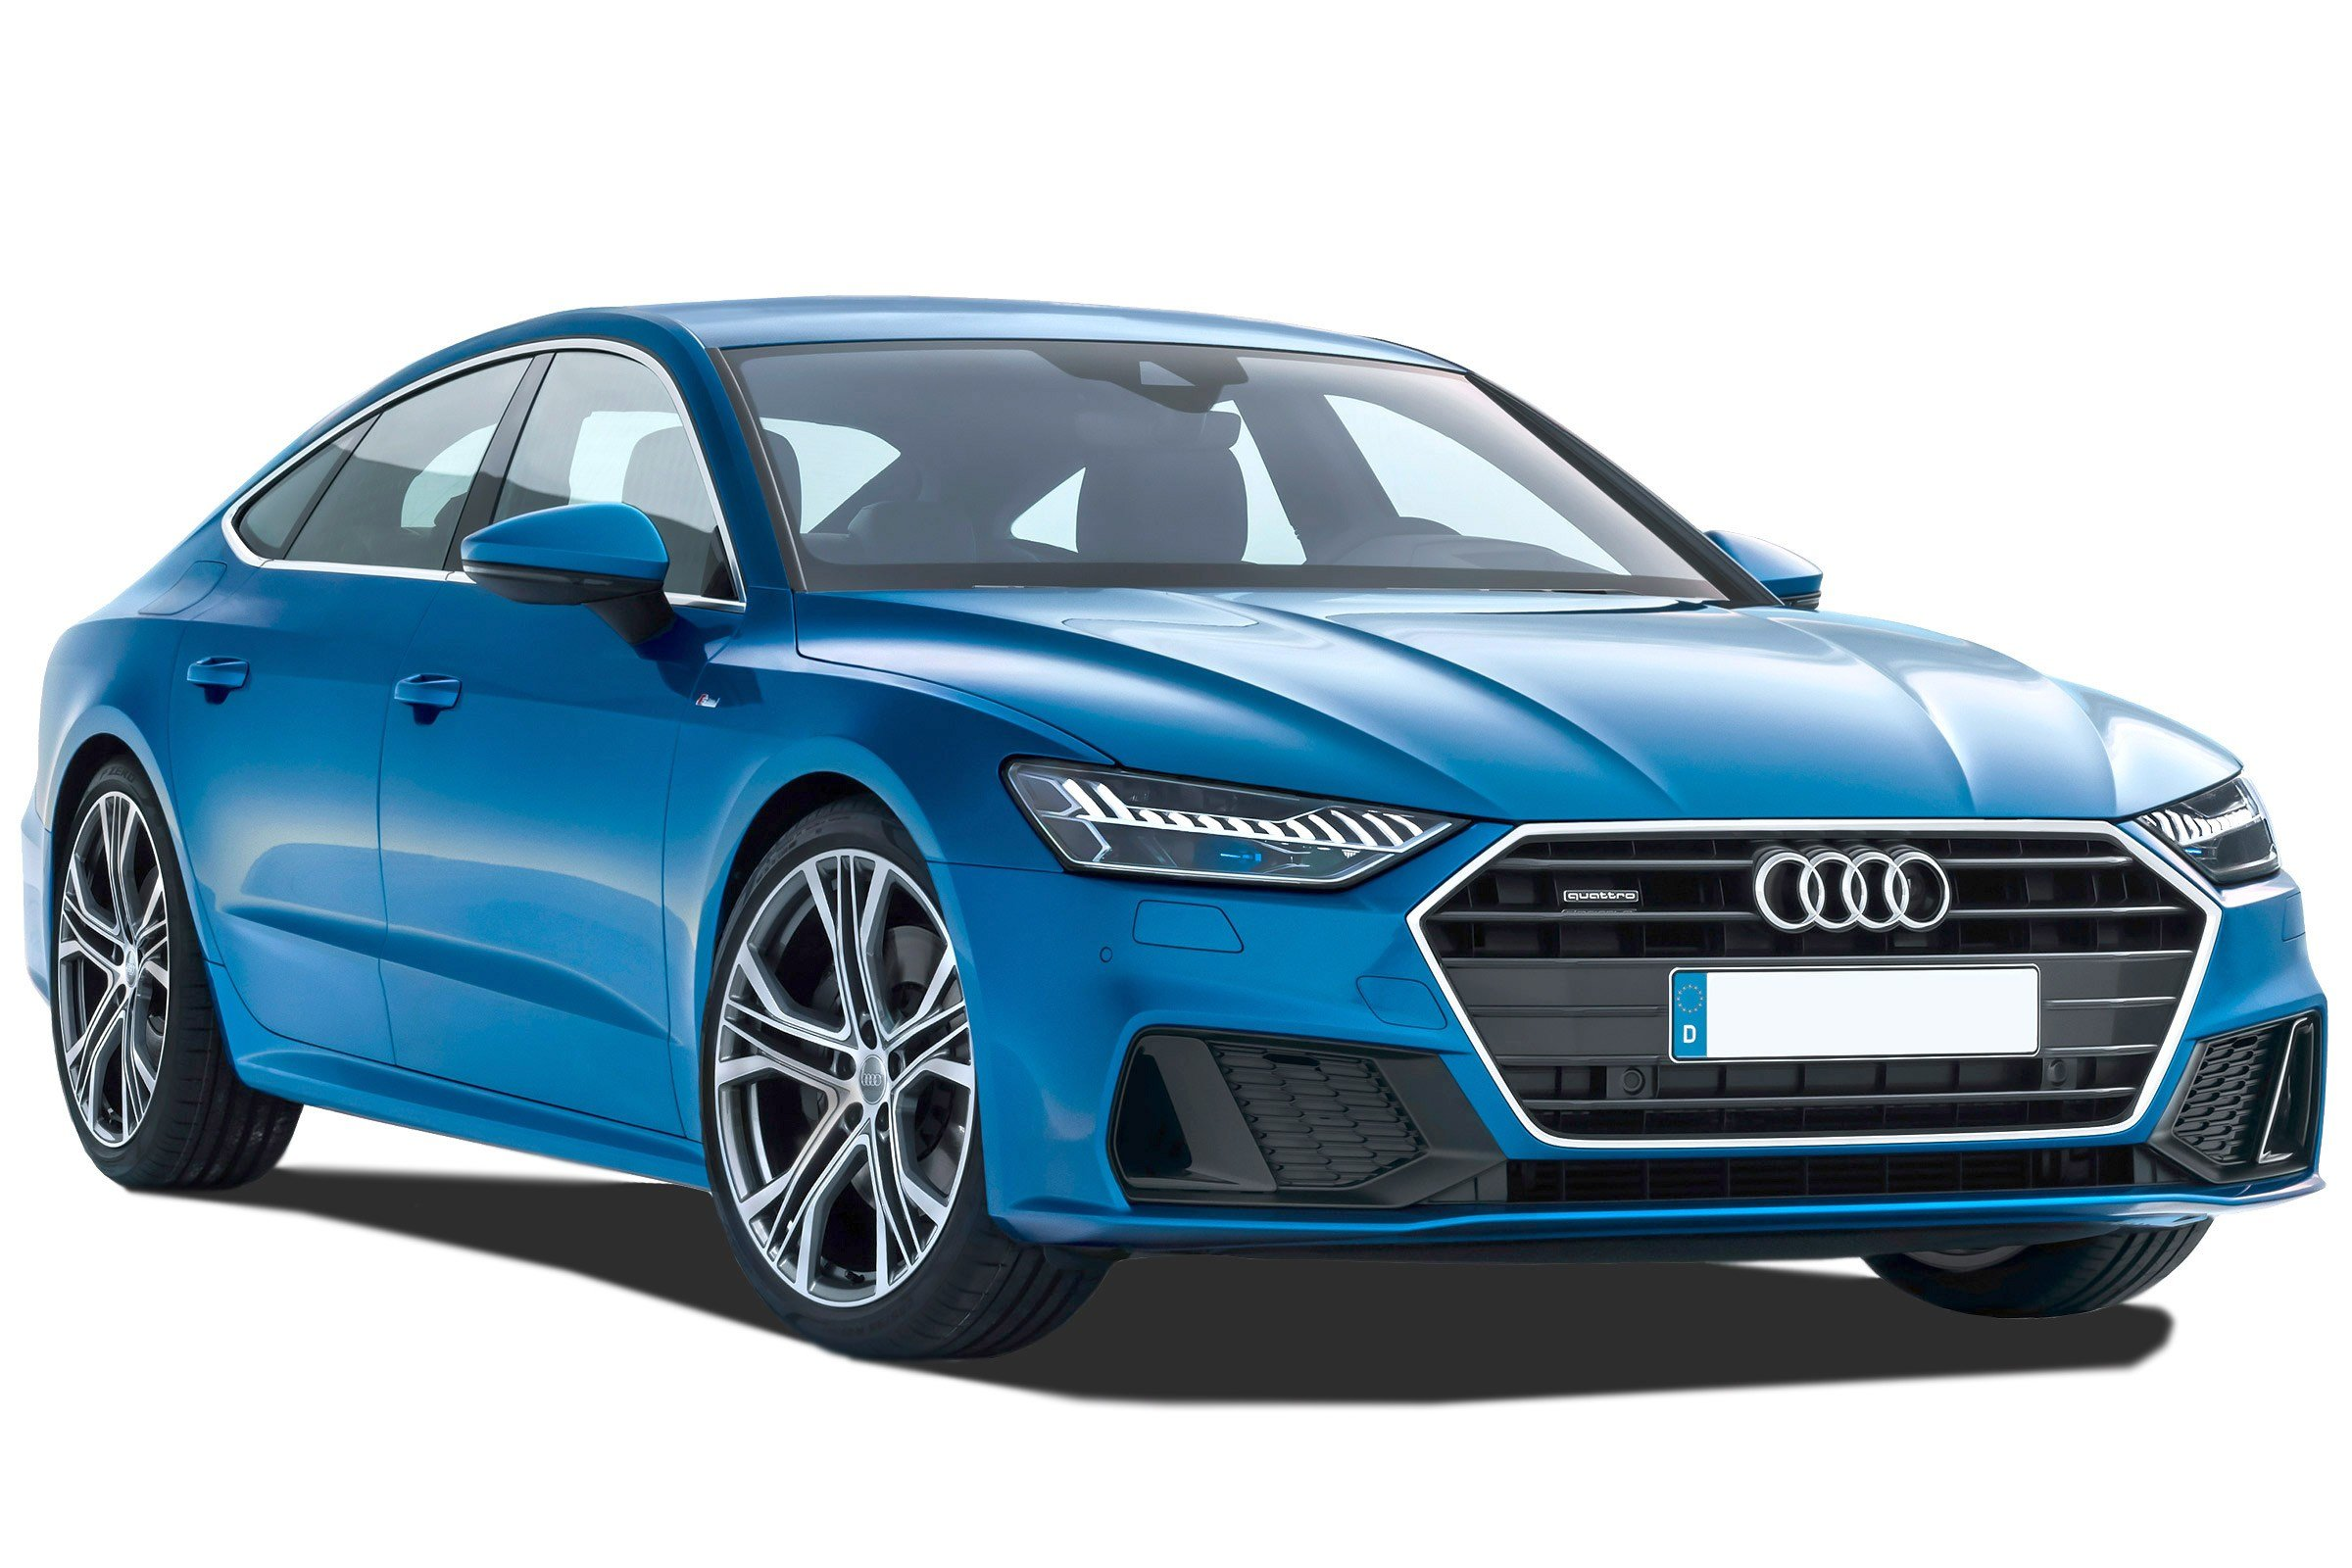 Latest Audi A7 Sportback Hatchback Review Carbuyer Free Download